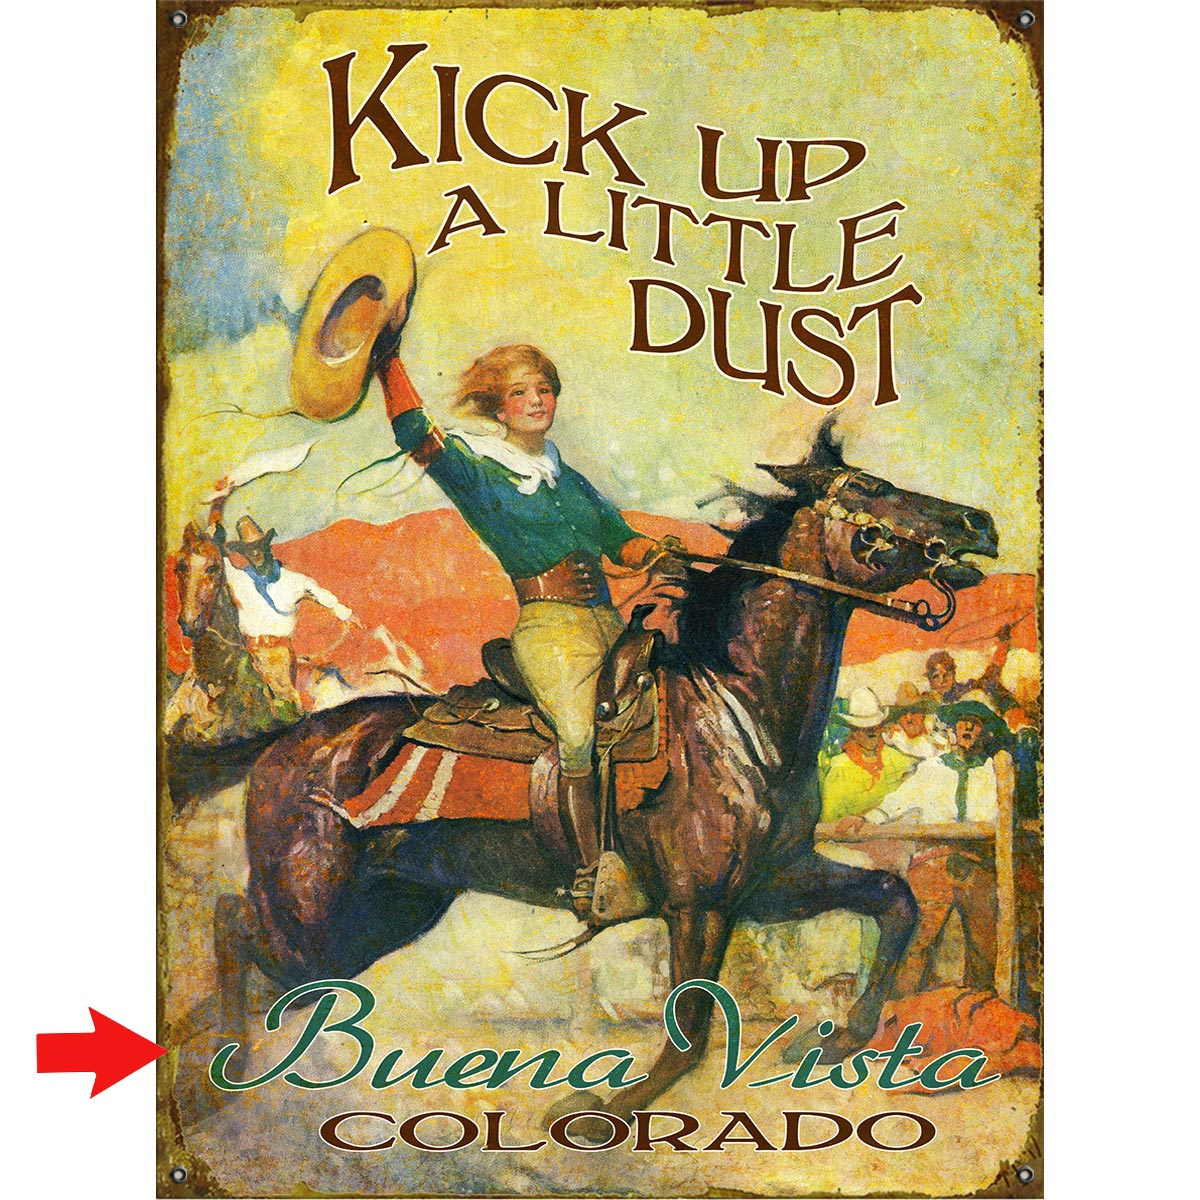 Kick Up a Little Dust Personalized Sign - 23 x 31